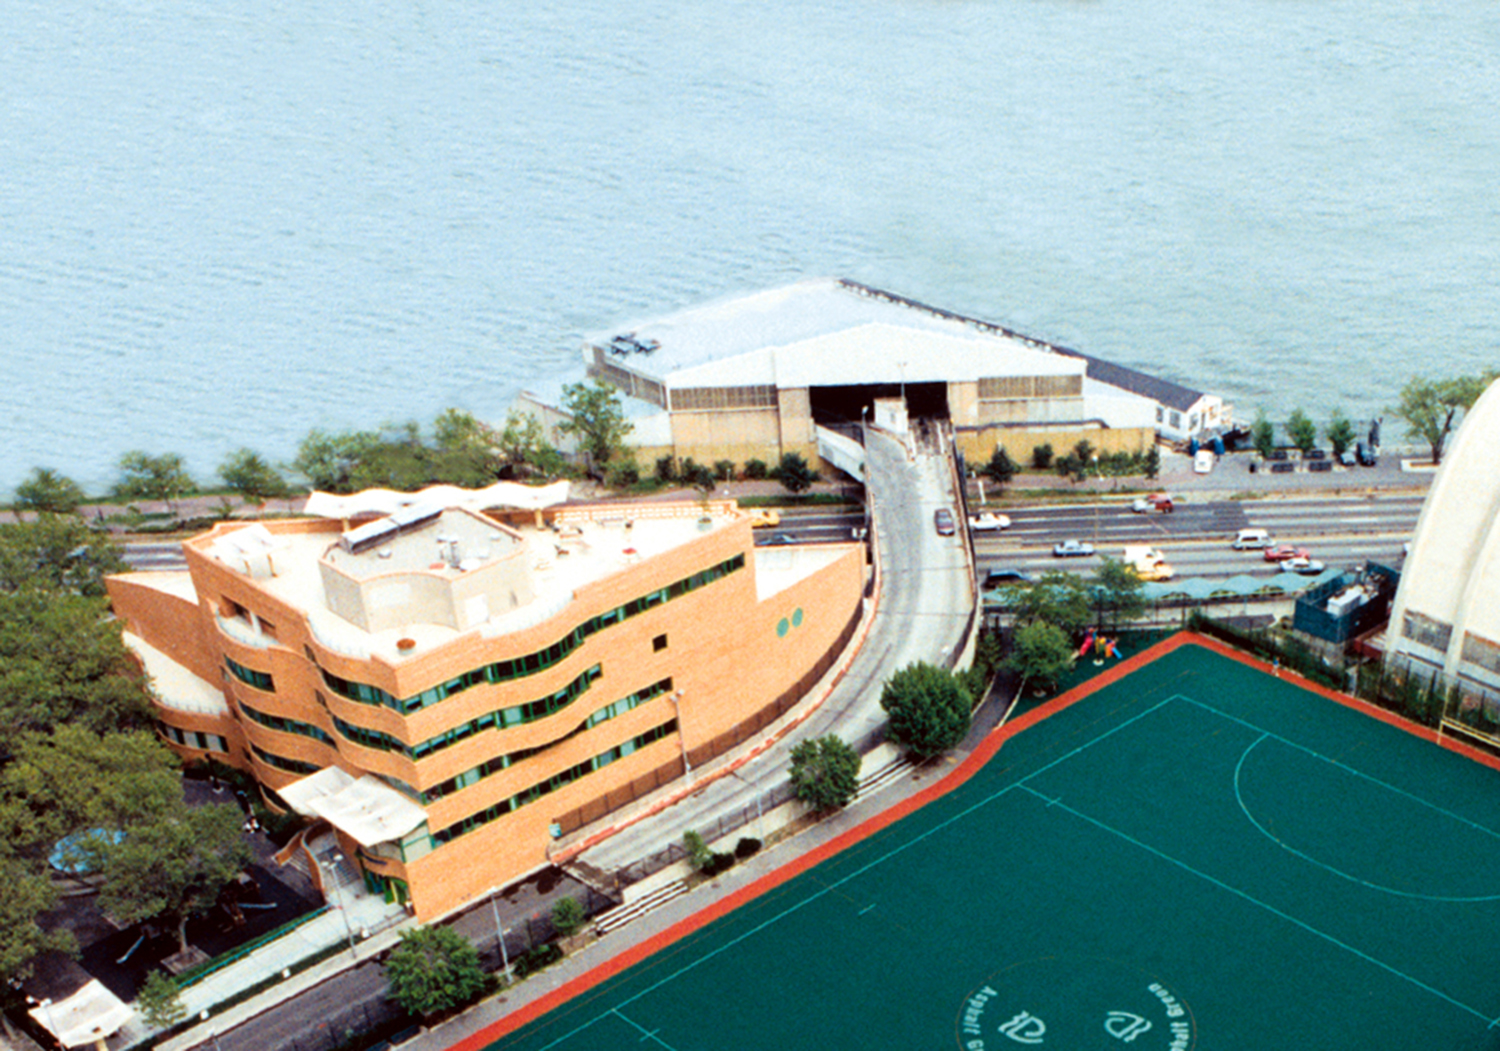 Aerial view of the Aqua Center